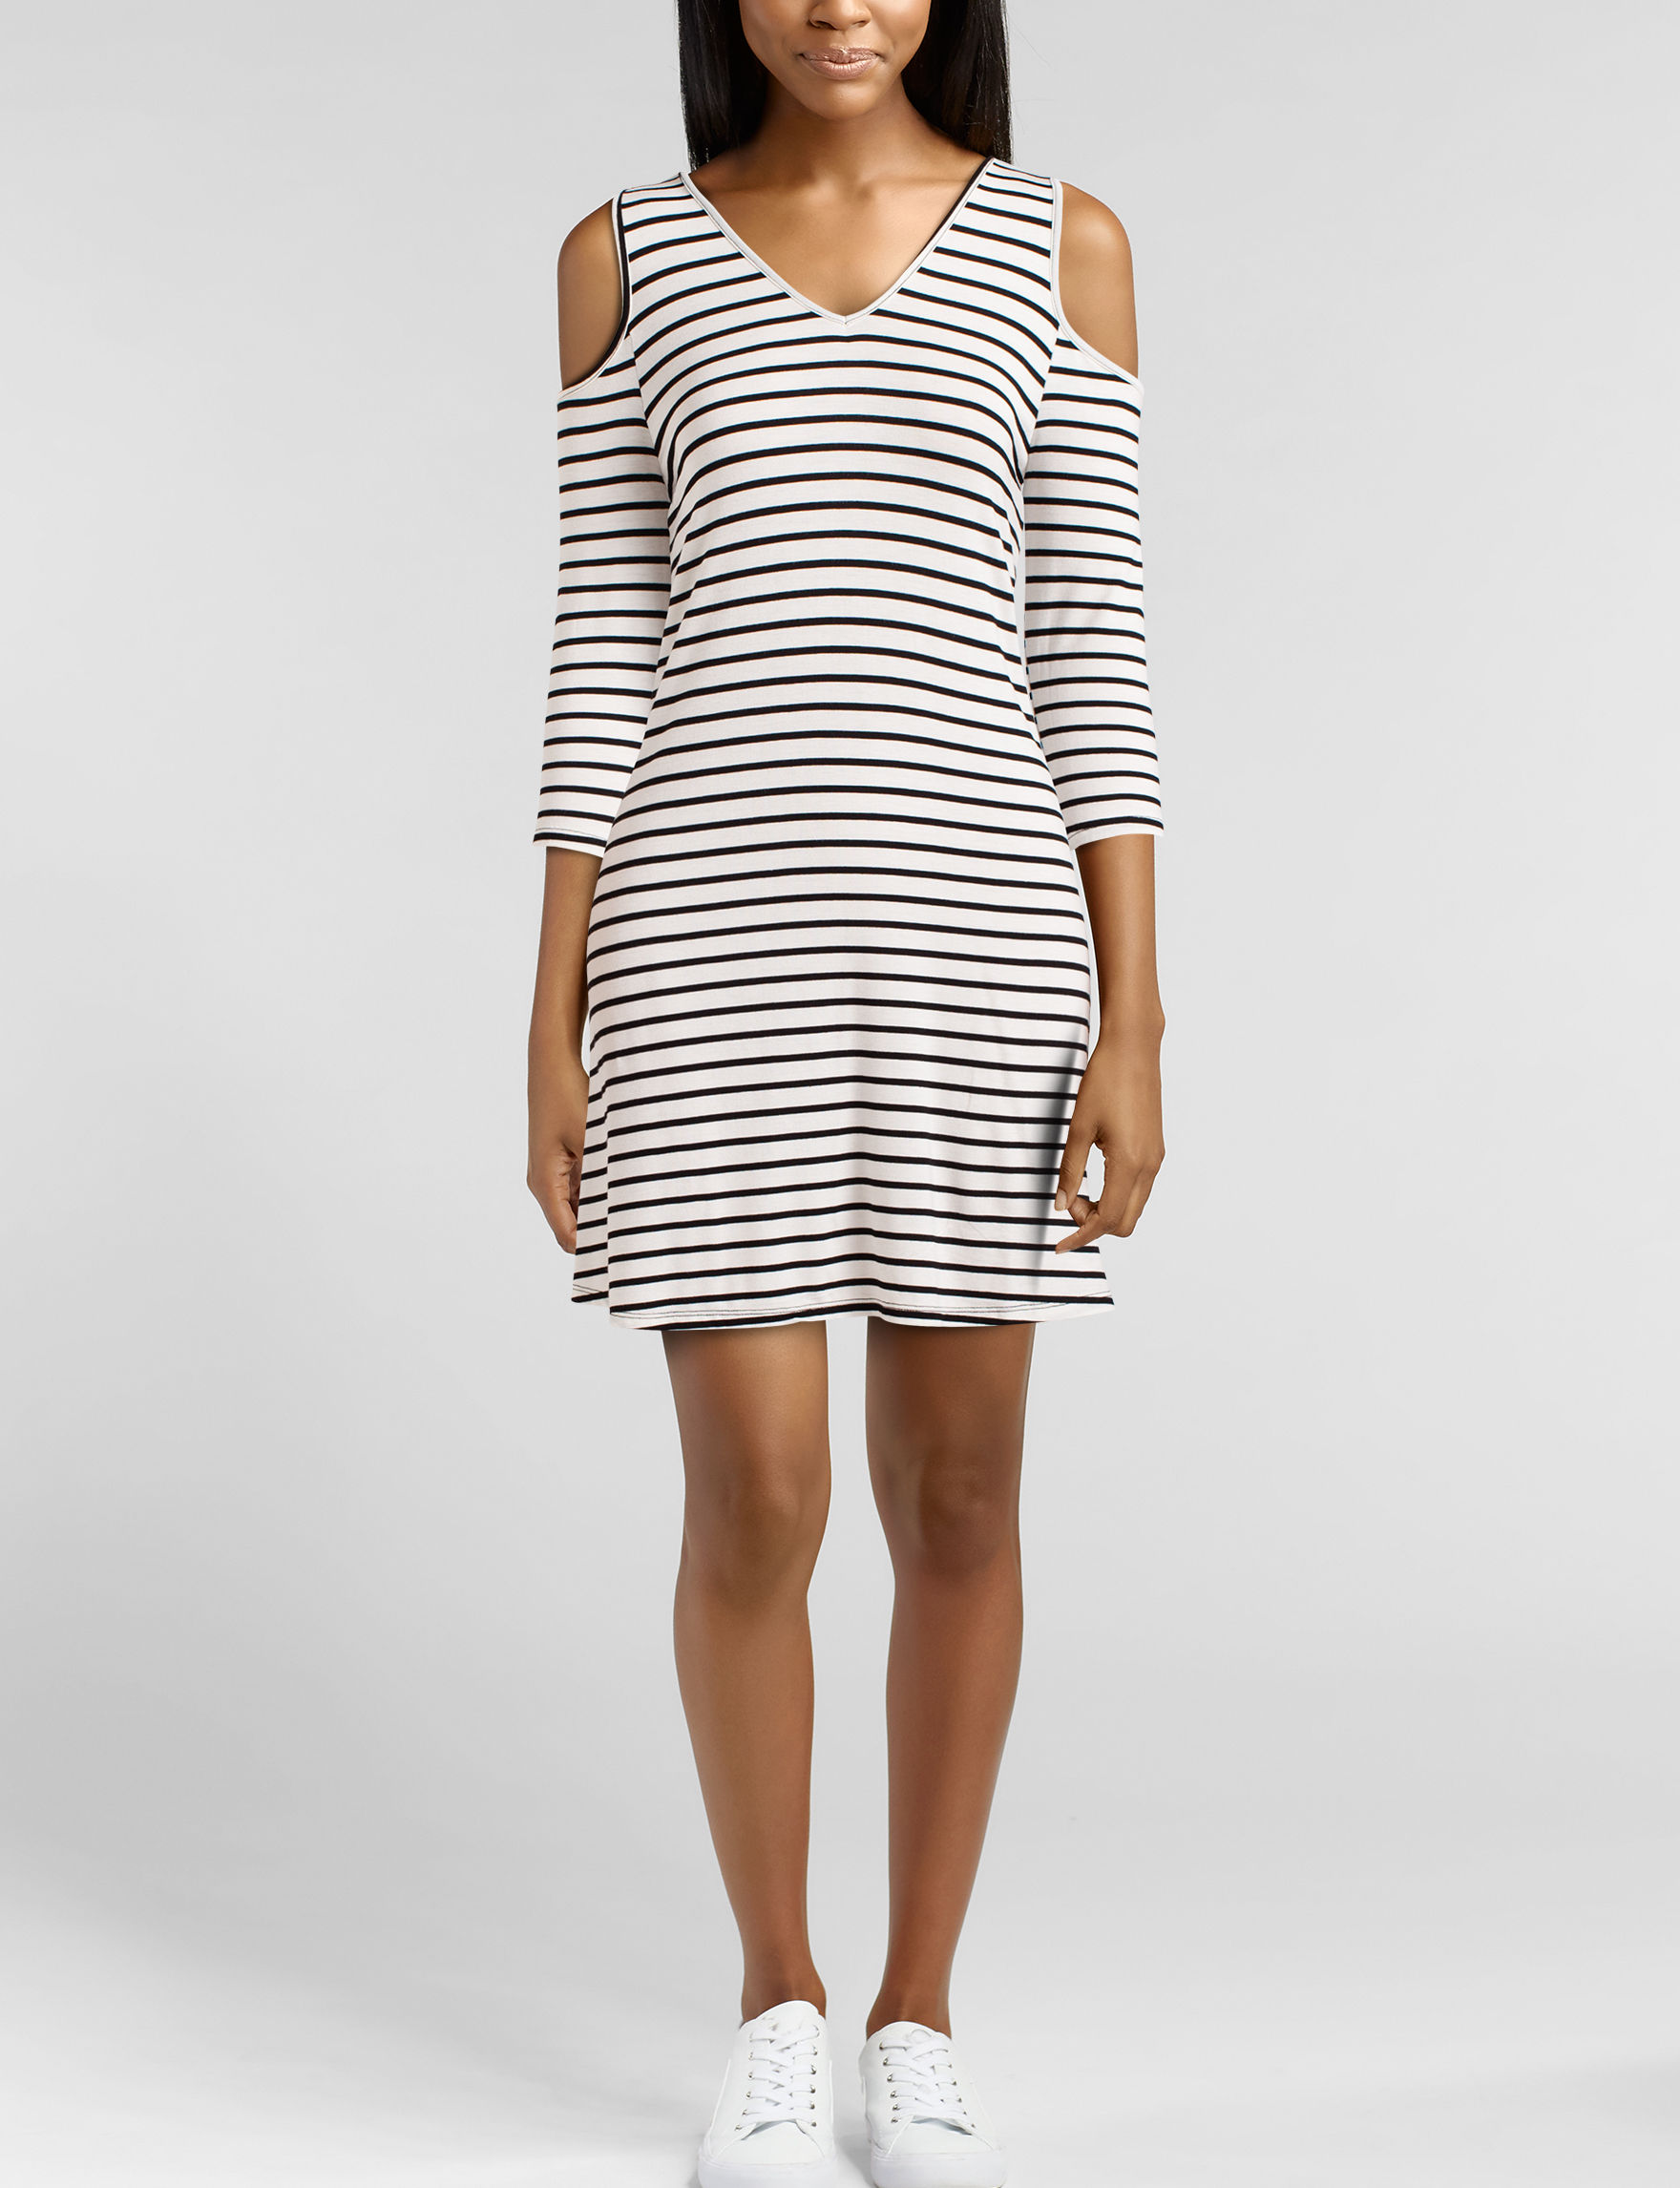 Wishful Park White / Black Everyday & Casual Shift Dresses